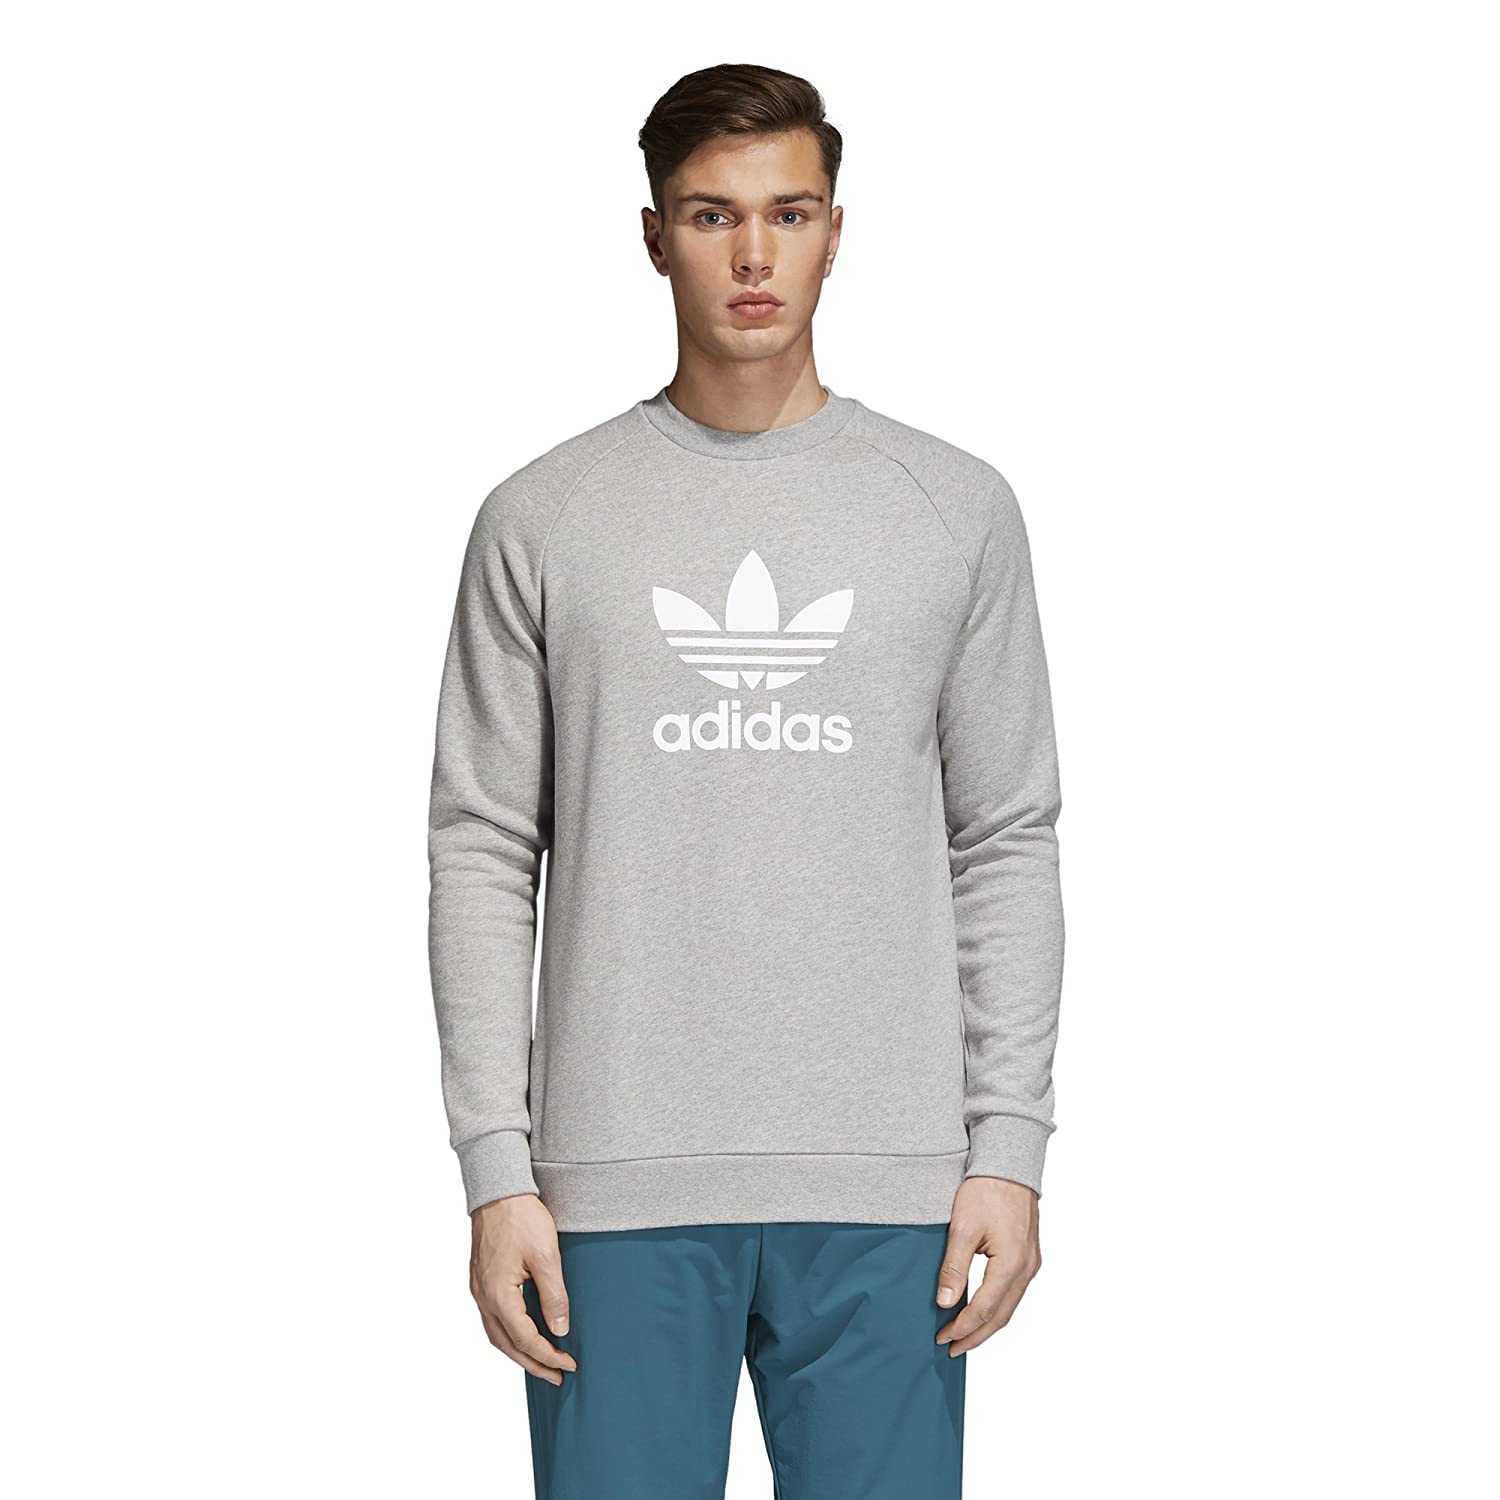 adidas Originals Mens Trefoil Crew